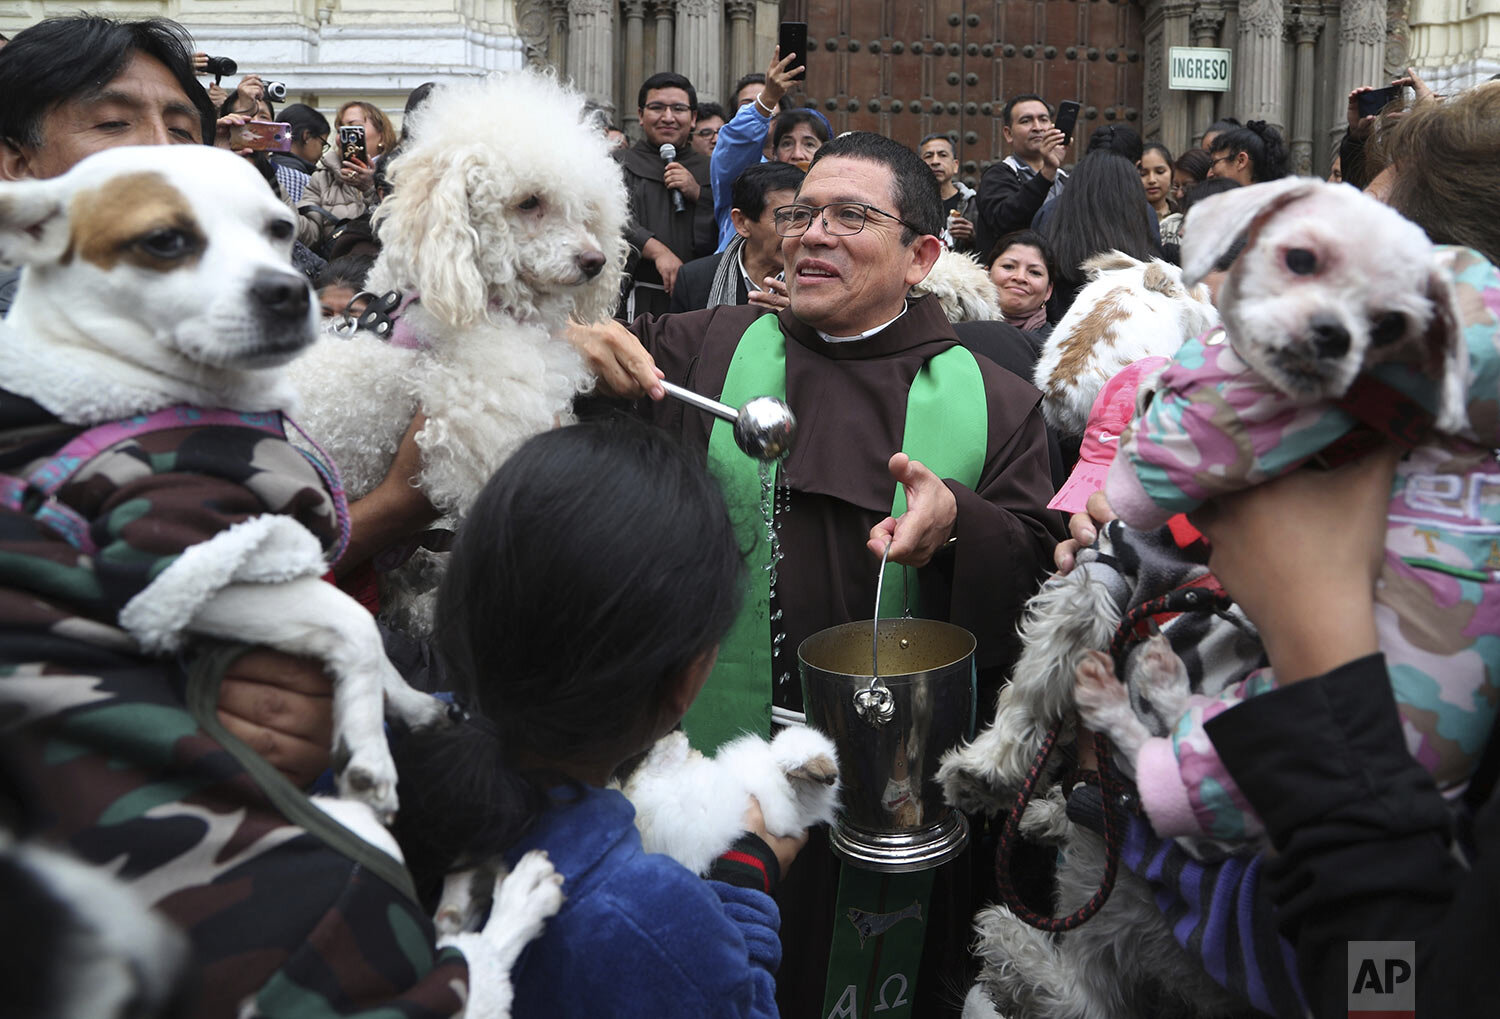 Catholic Priest Fermin Pena blesses animals with holy water outside San Francisco church in Lima, Peru, Sunday, Oct. 6, 2019. The annual event is held in honor of Saint Francis, the patron saint of ecologists whose feast day is Oct. 4 and who is known for his love of animals. (AP Photo/Martin Mejia)